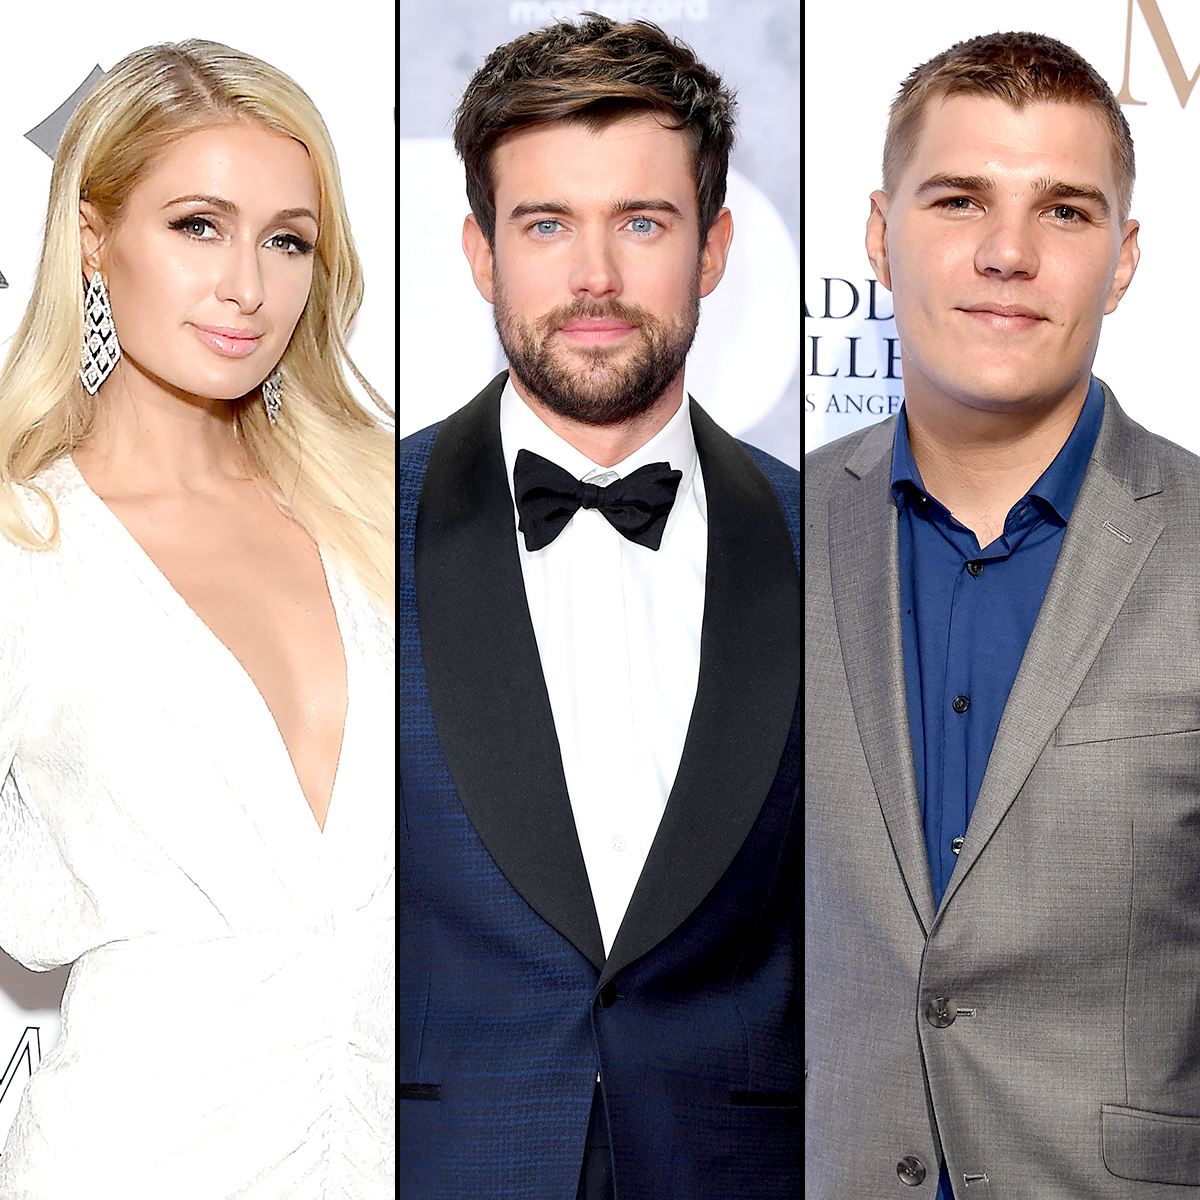 Paris-Hilton-'Hooked-Up'-With-Comedian-Jack-Whitehall-After-Split-from-Ex-Fiance-Chris-Zylka